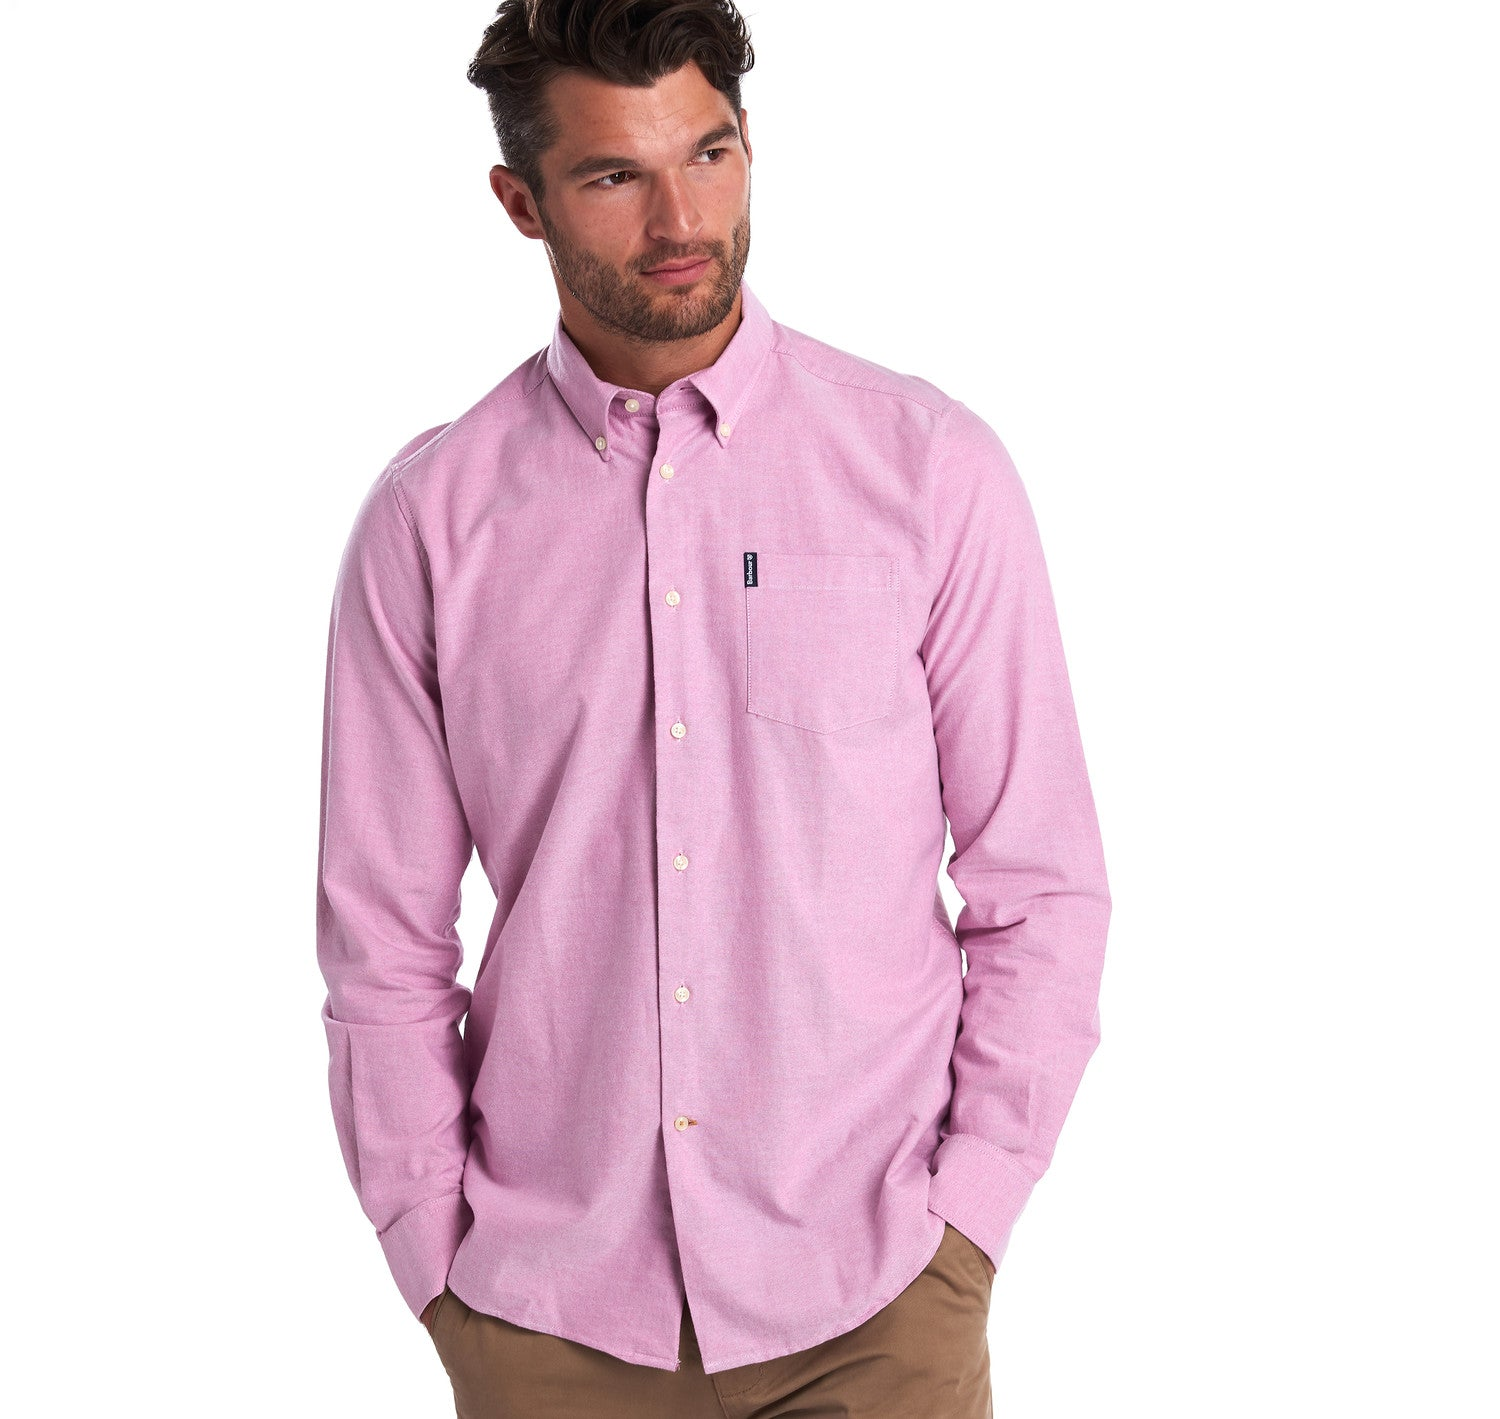 Barbour Oxford 8 Tailored Fit Shirt for Men in Raspberry